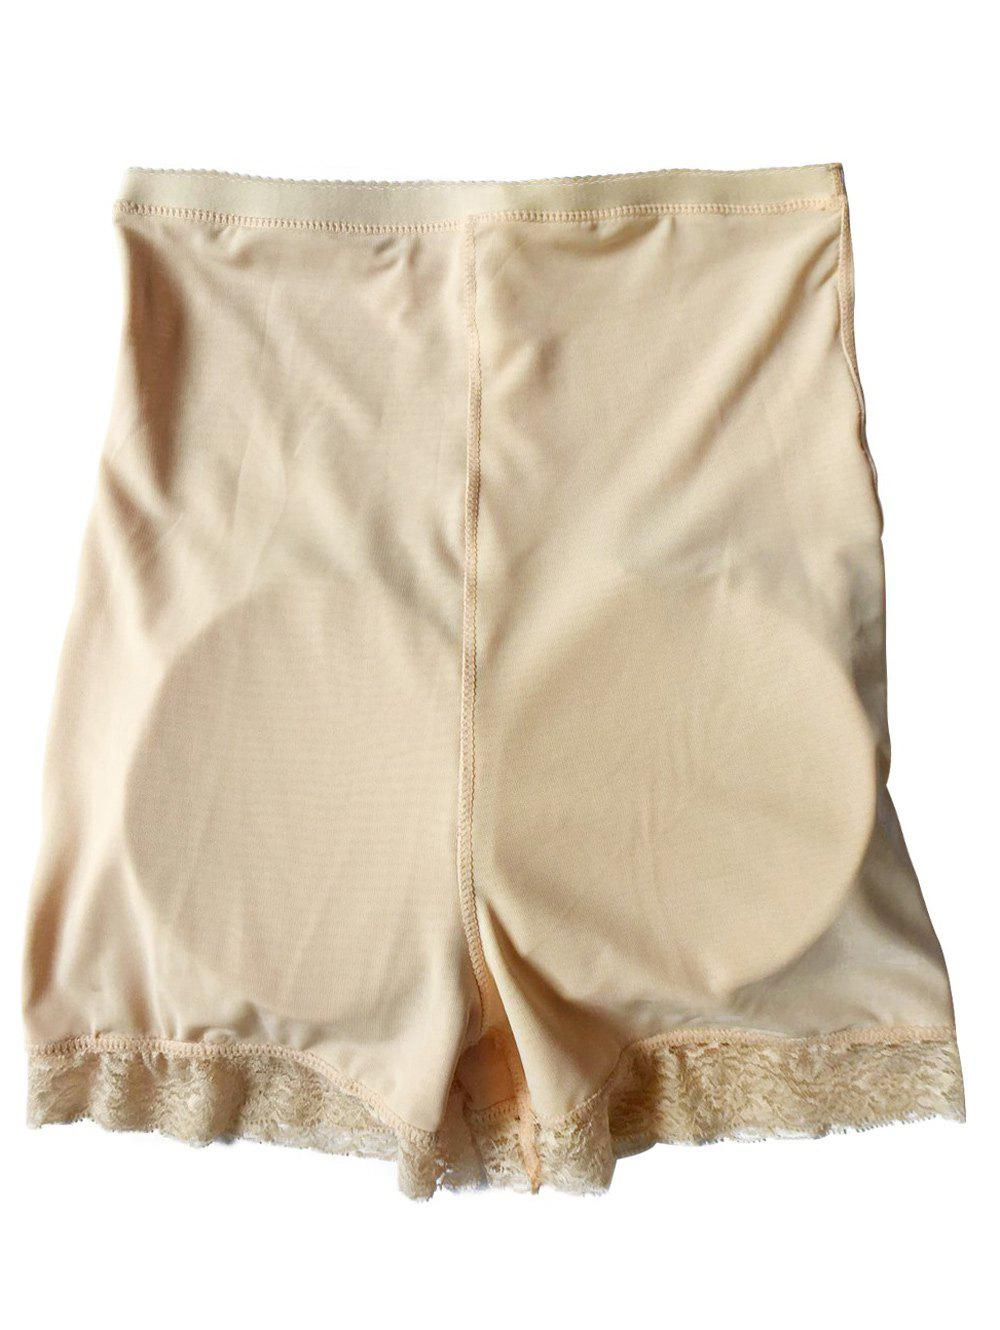 High Waist Padded Lifted Panties - APRICOT XL